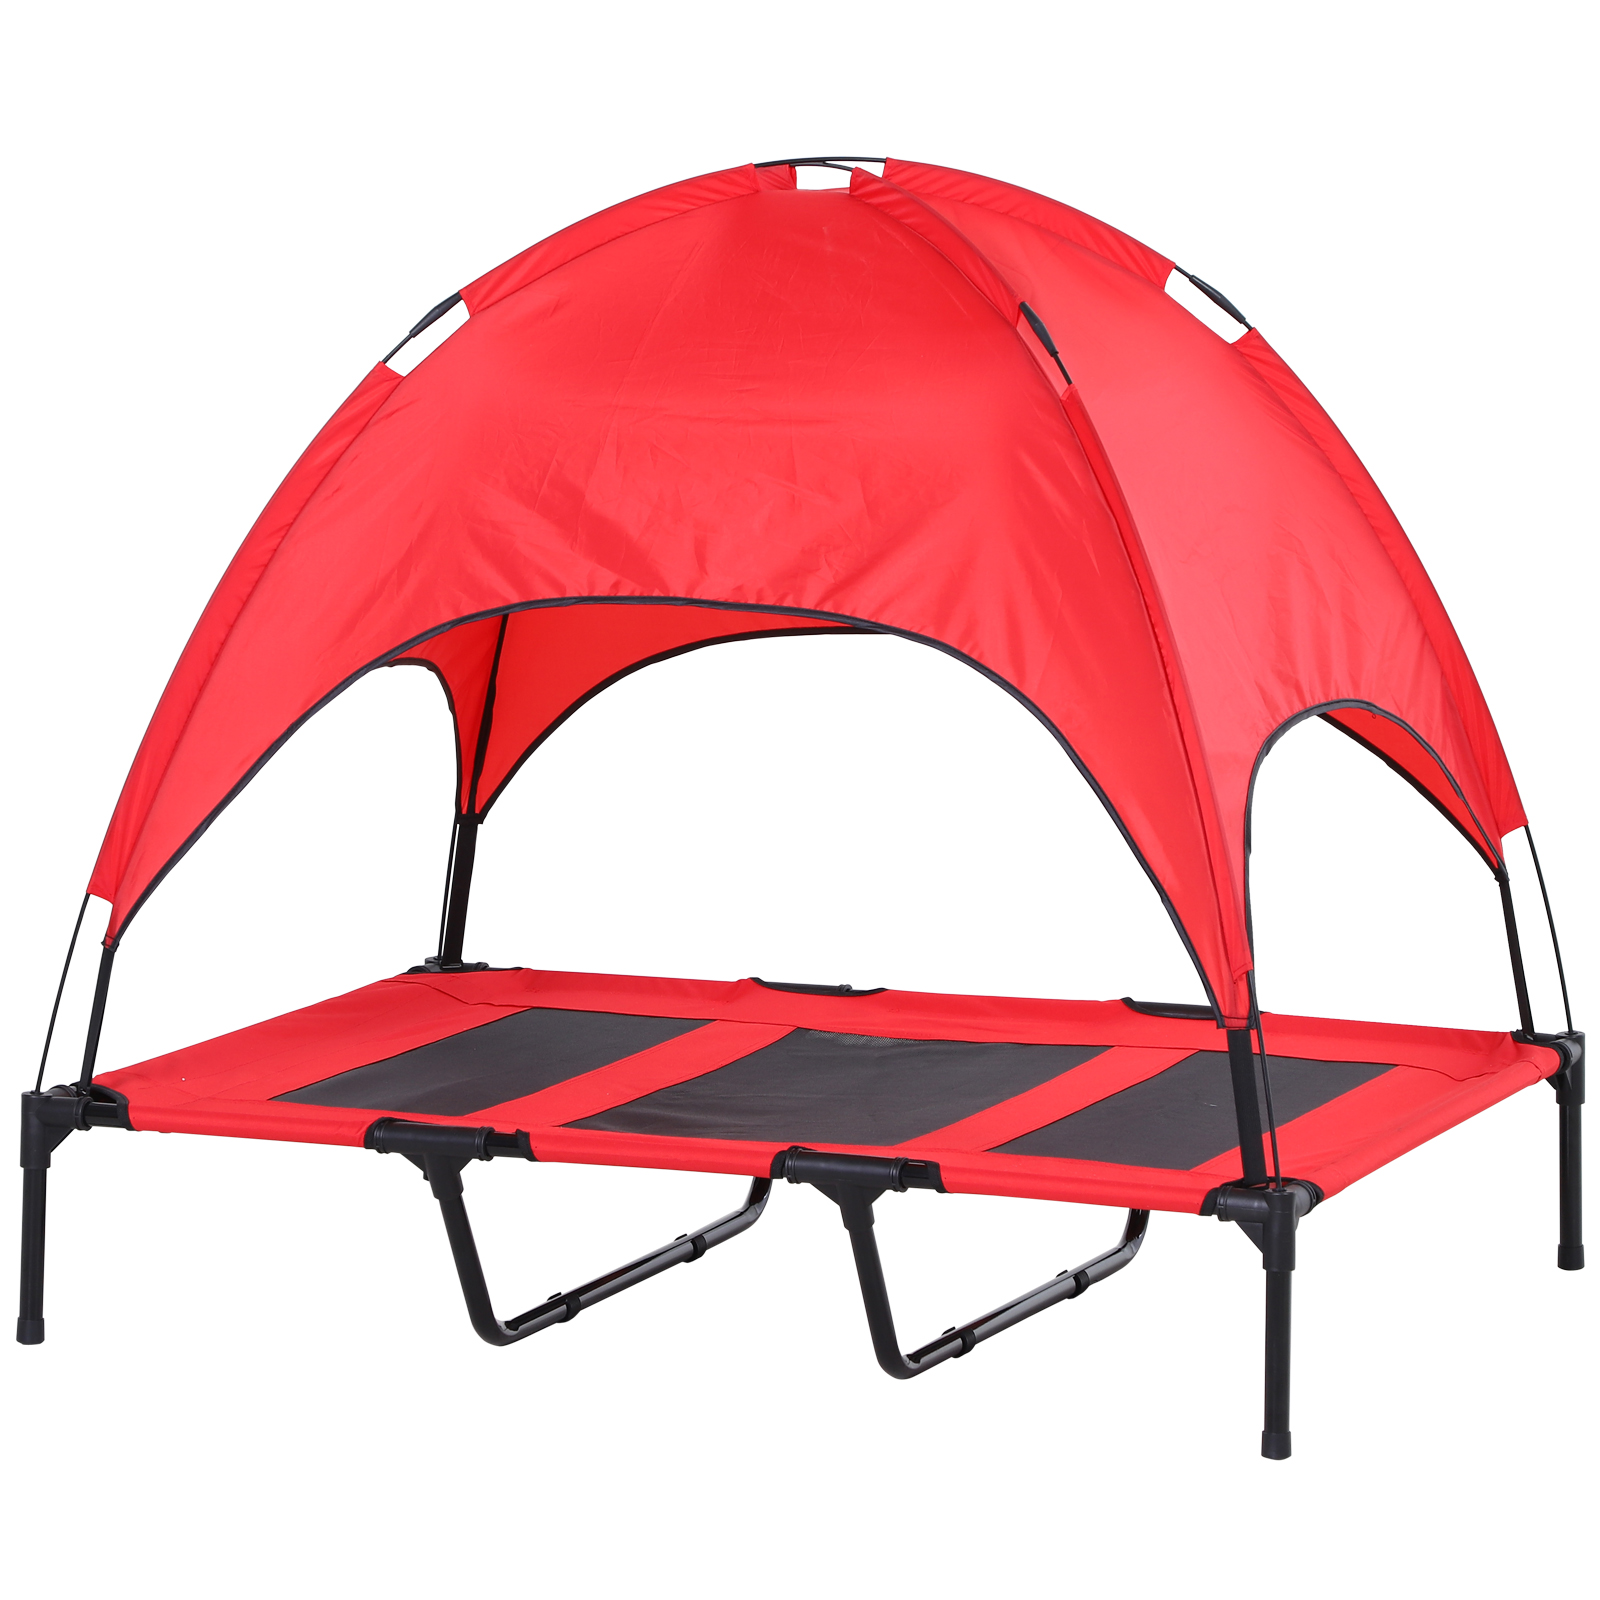 PawHut-Elevated-Pet-Bed-Dog-Foldable-Cot-Tent-Canopy thumbnail 20